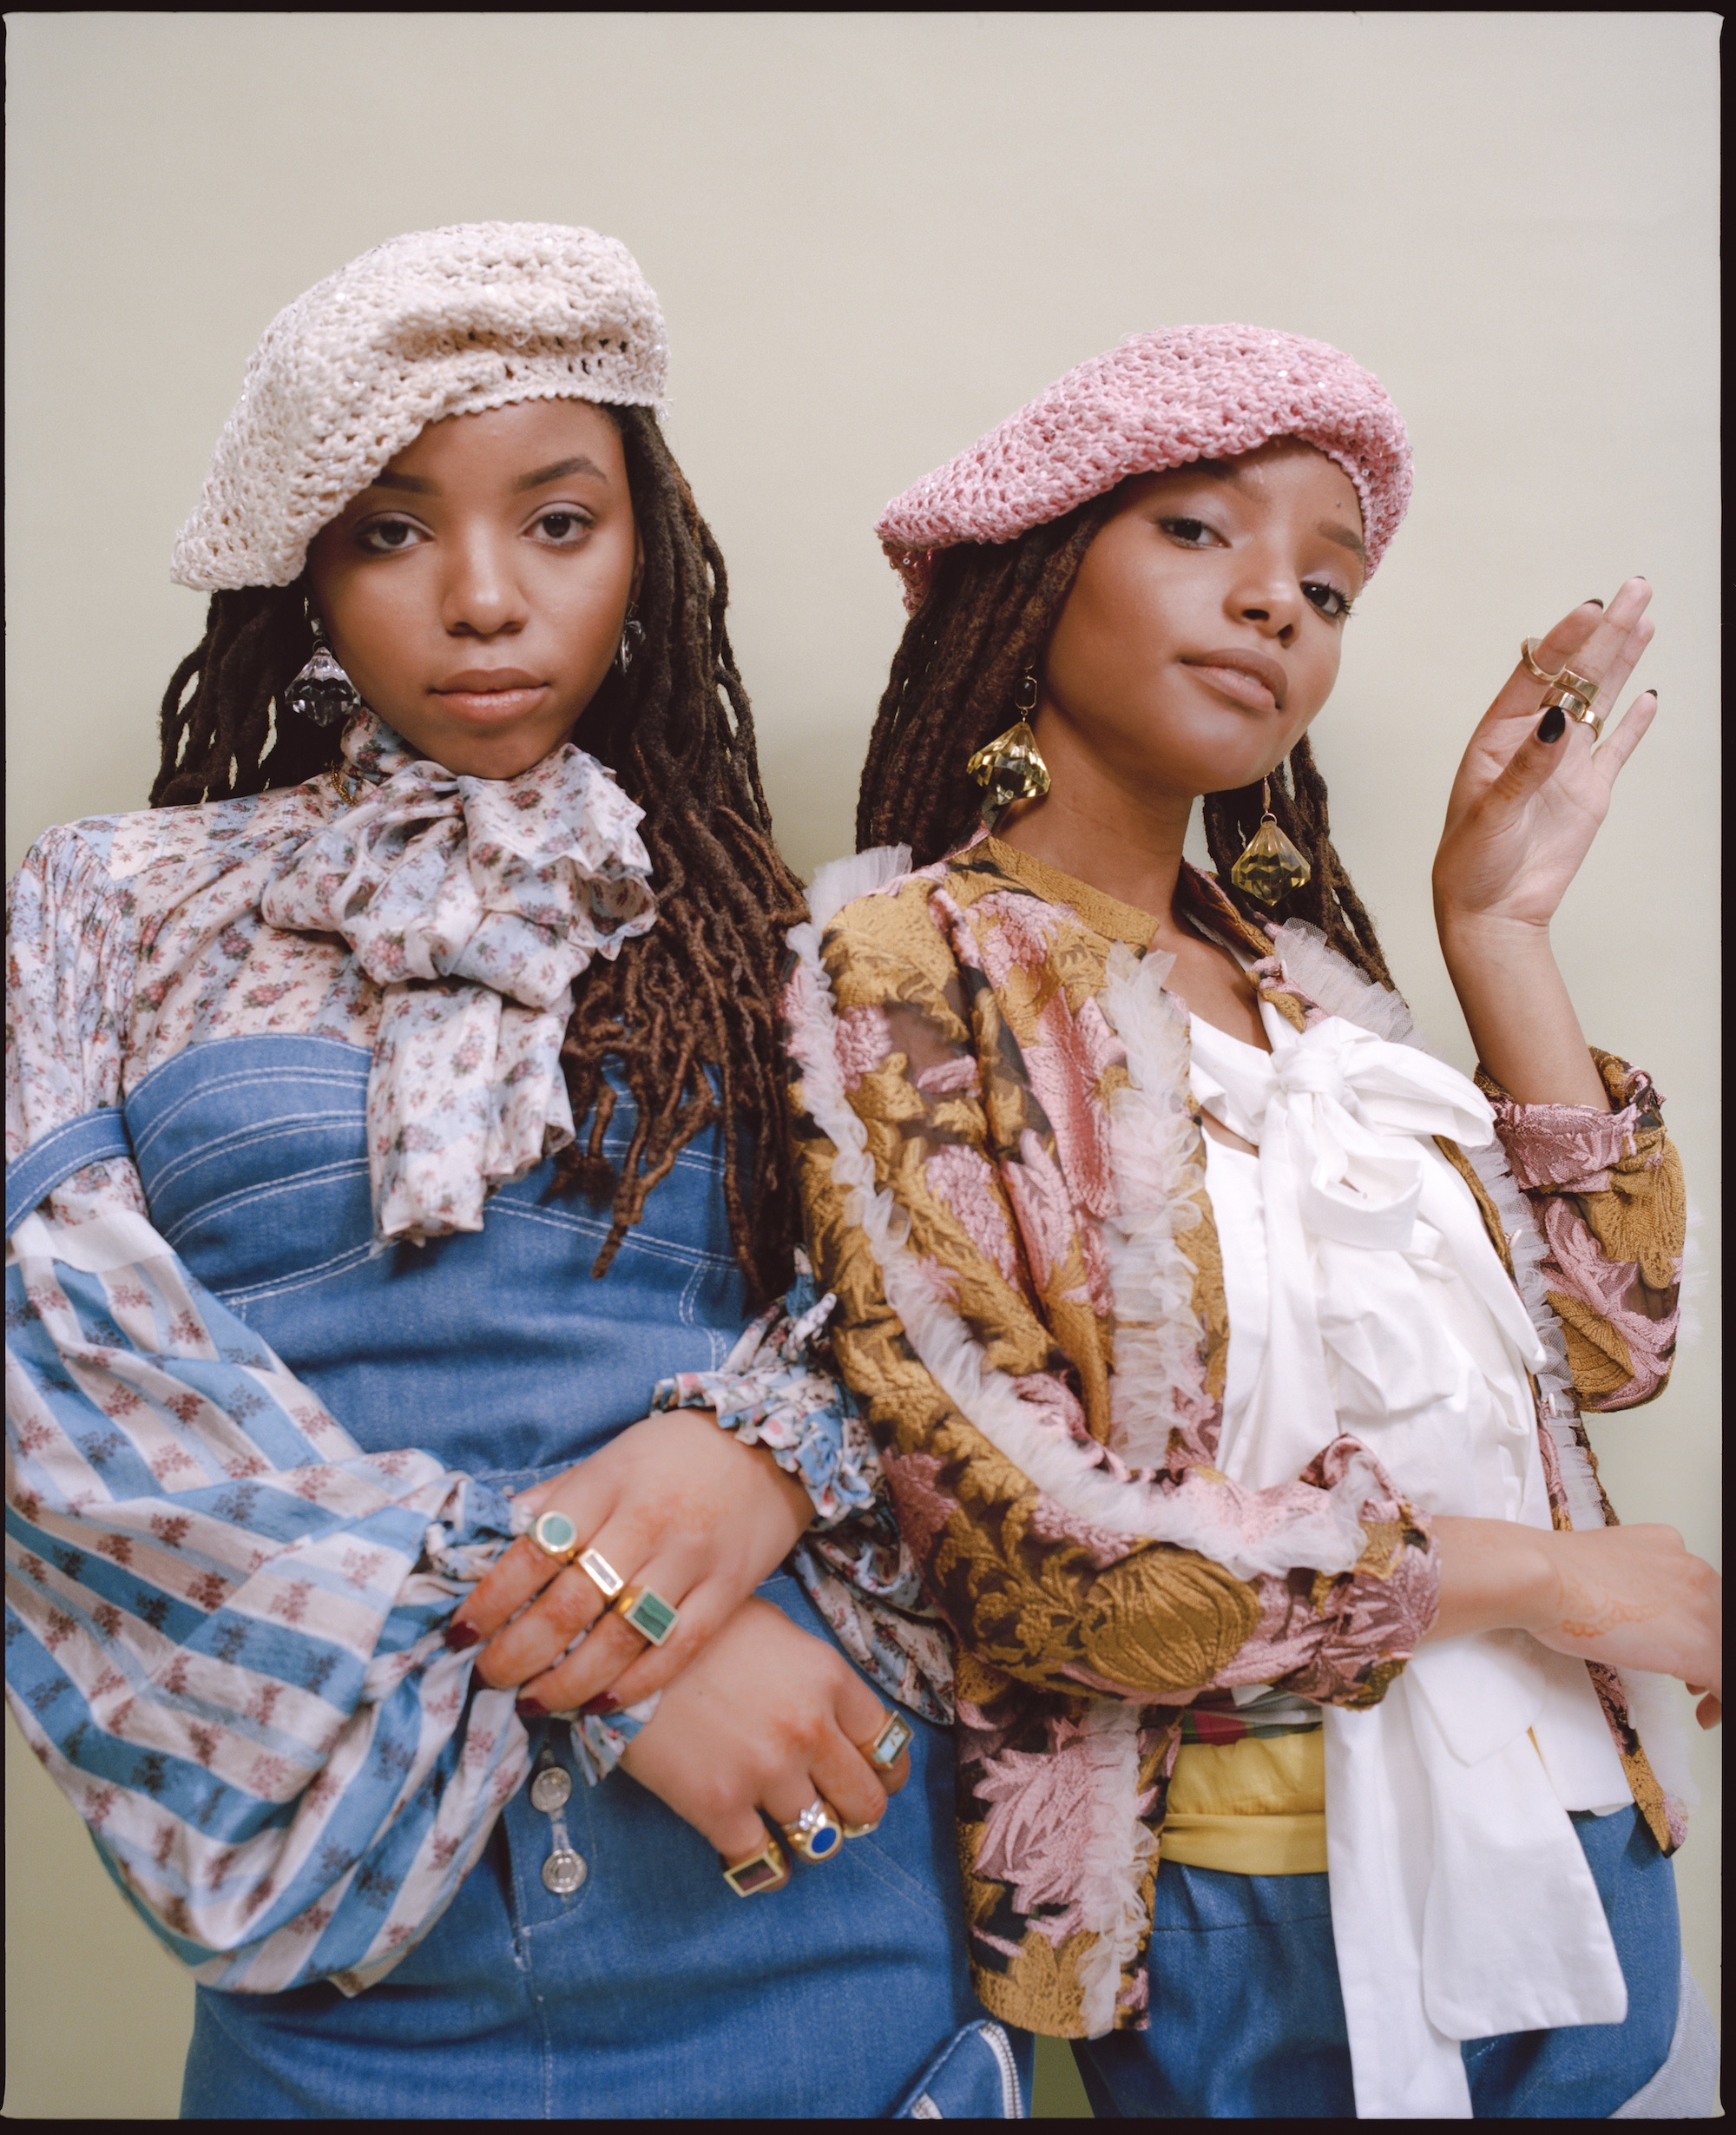 chloe x halle singer and actress halle bailey will star as mermaid Ariel Disney remake